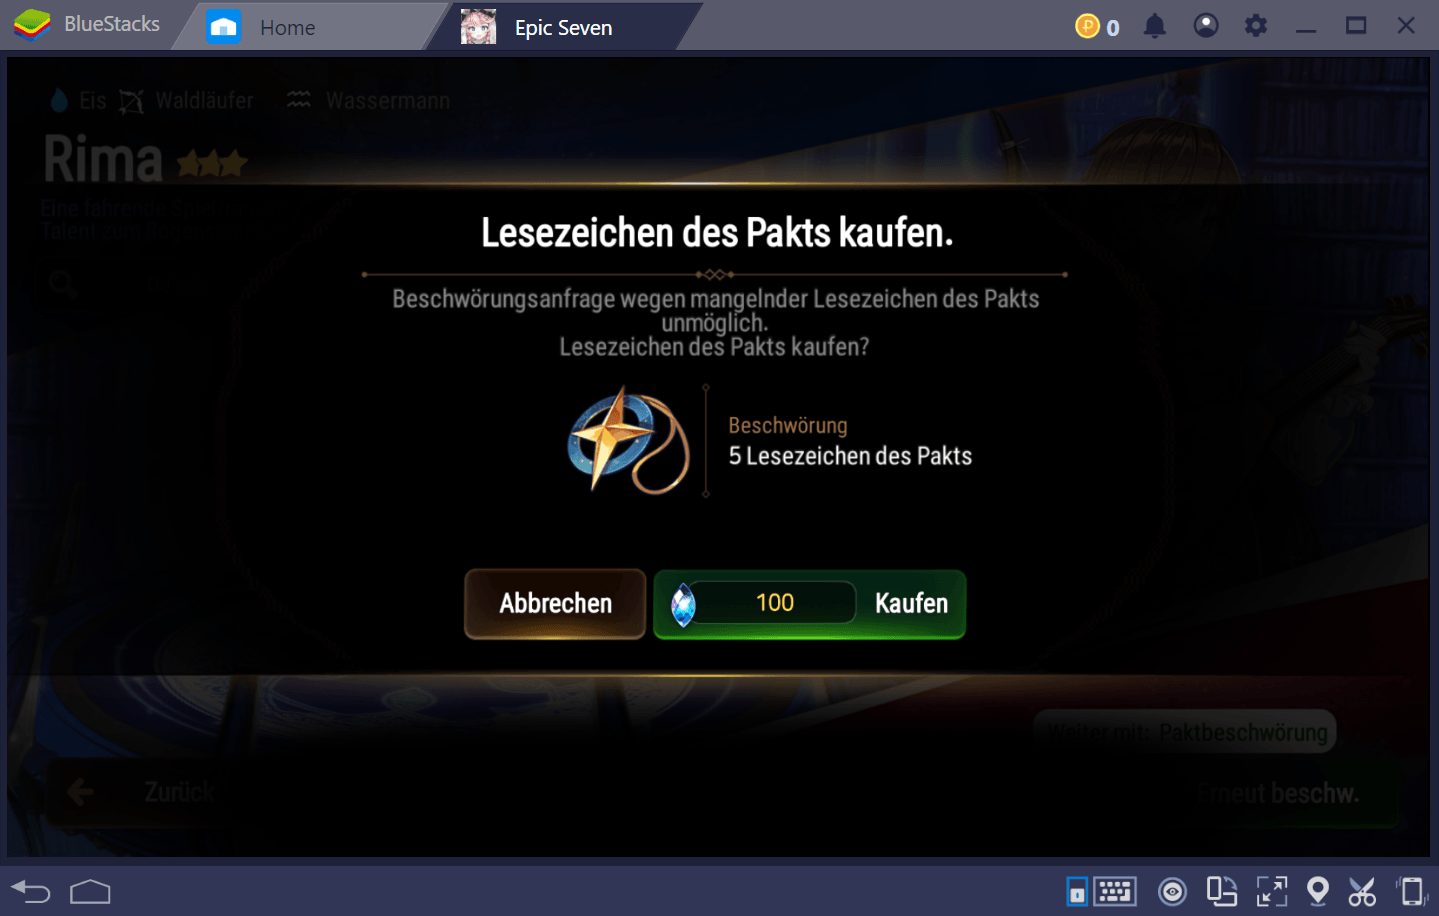 BlueStacks Anfänger-Guide zu Epic Seven